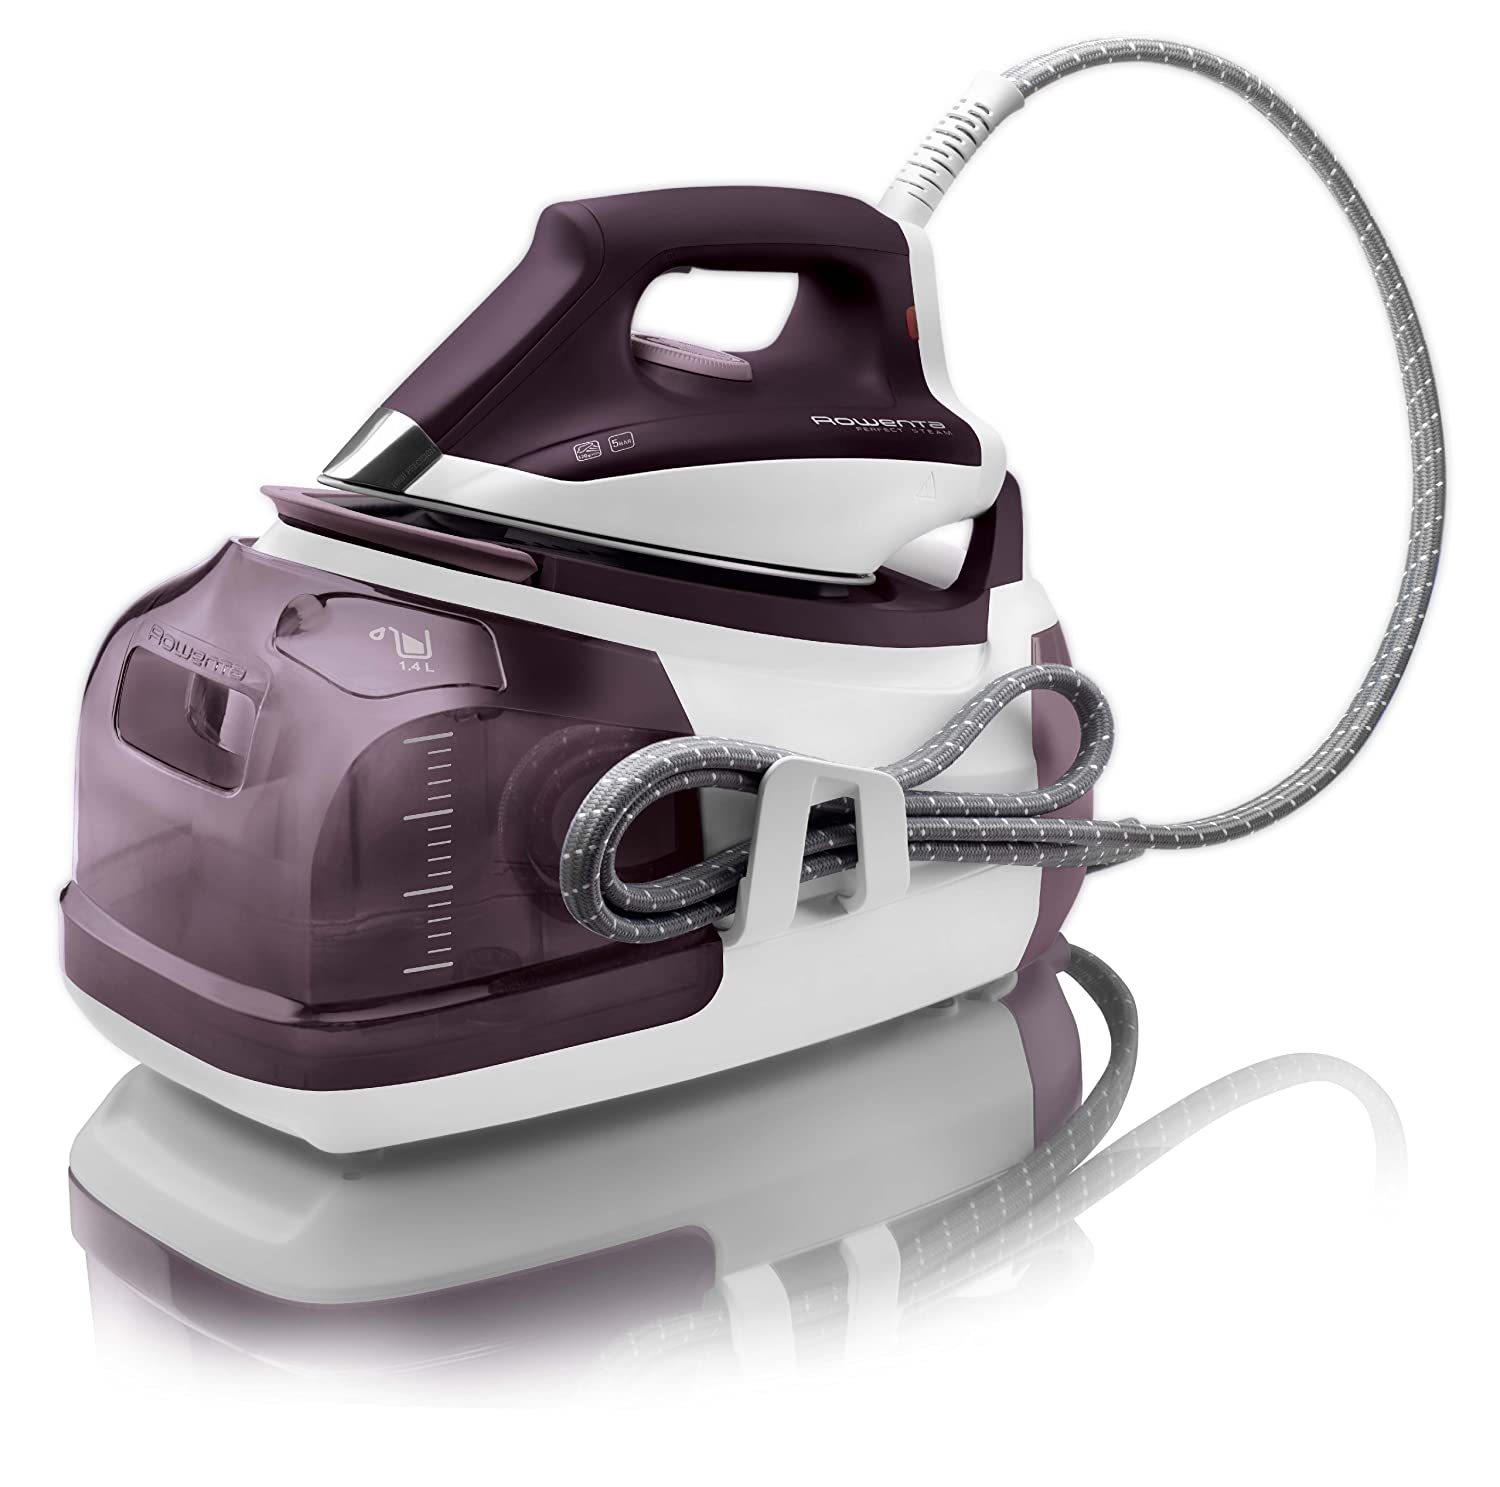 Cleaning rowenta pressure iron and steamer - Cleaning Rowenta Pressure Iron And Steamer 2